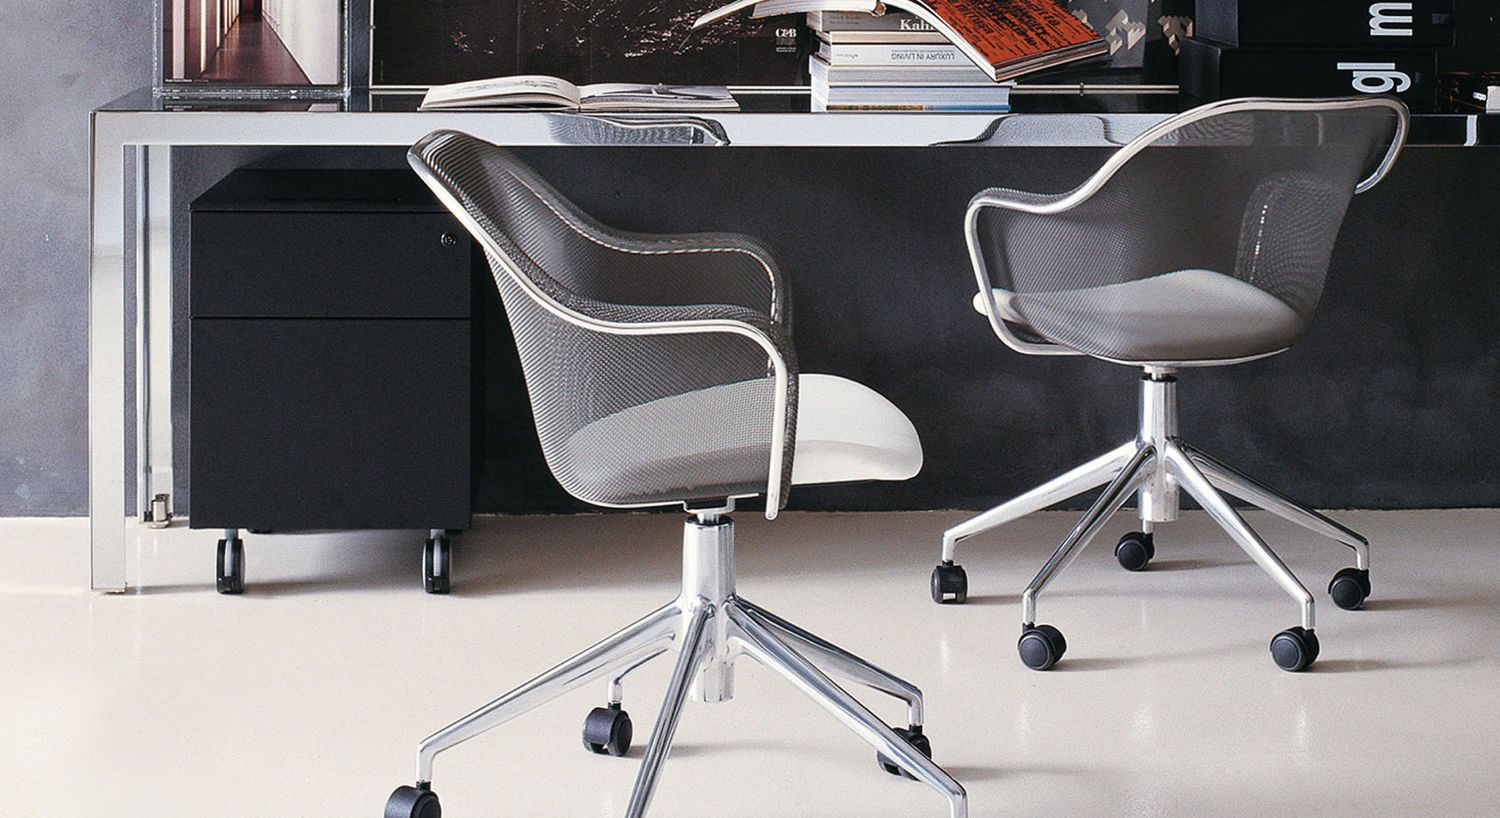 Explore Design Products Office Furniture and more